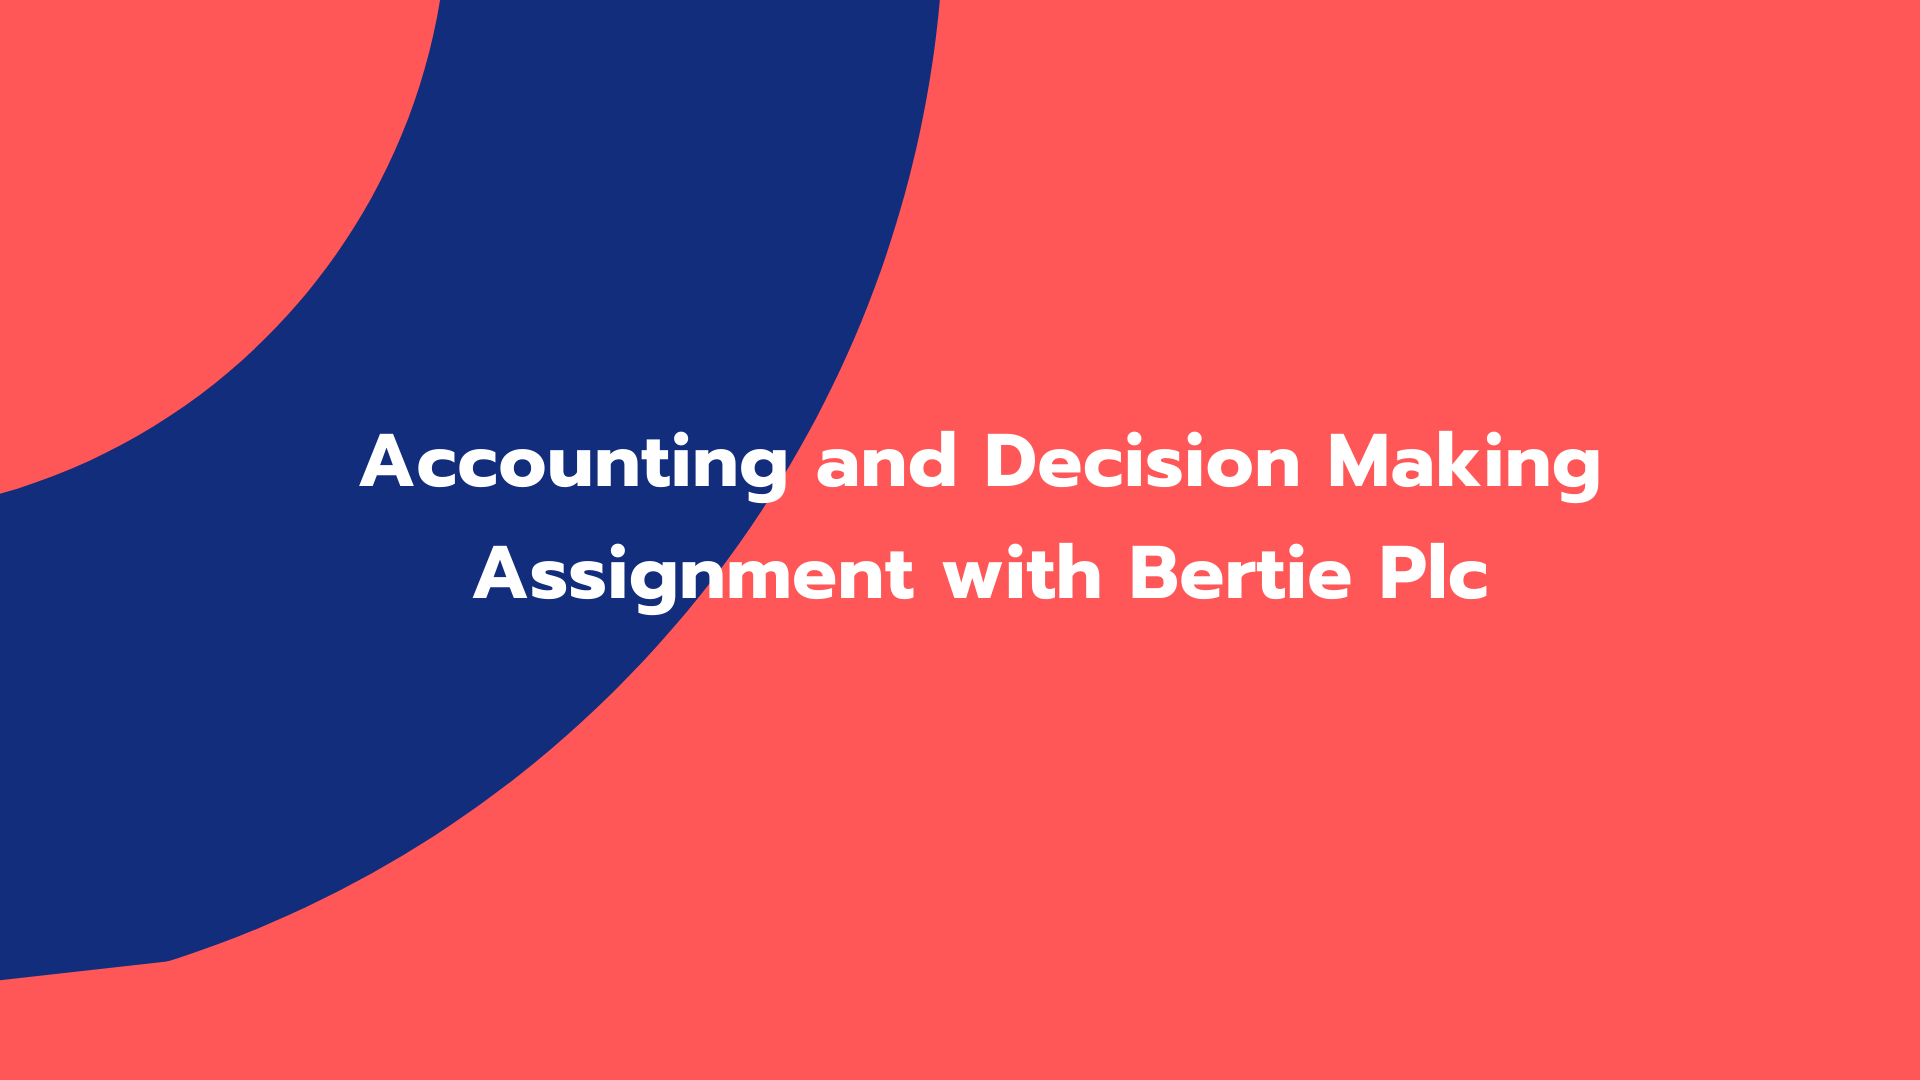 Accounting and Decision Making Assignment with Bertie Plc